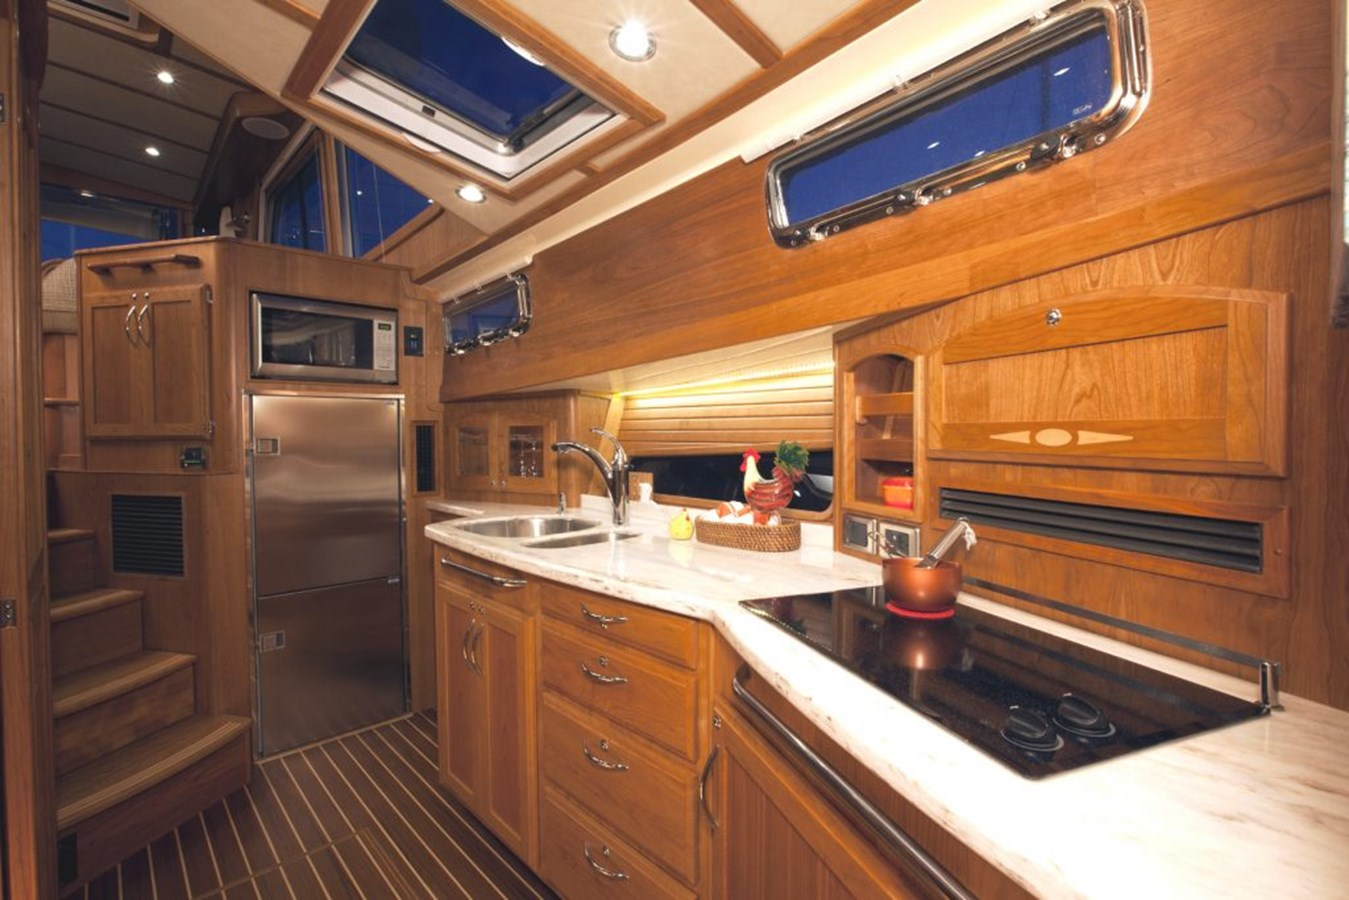 Galley - 48 SABRE YACHTS For Sale